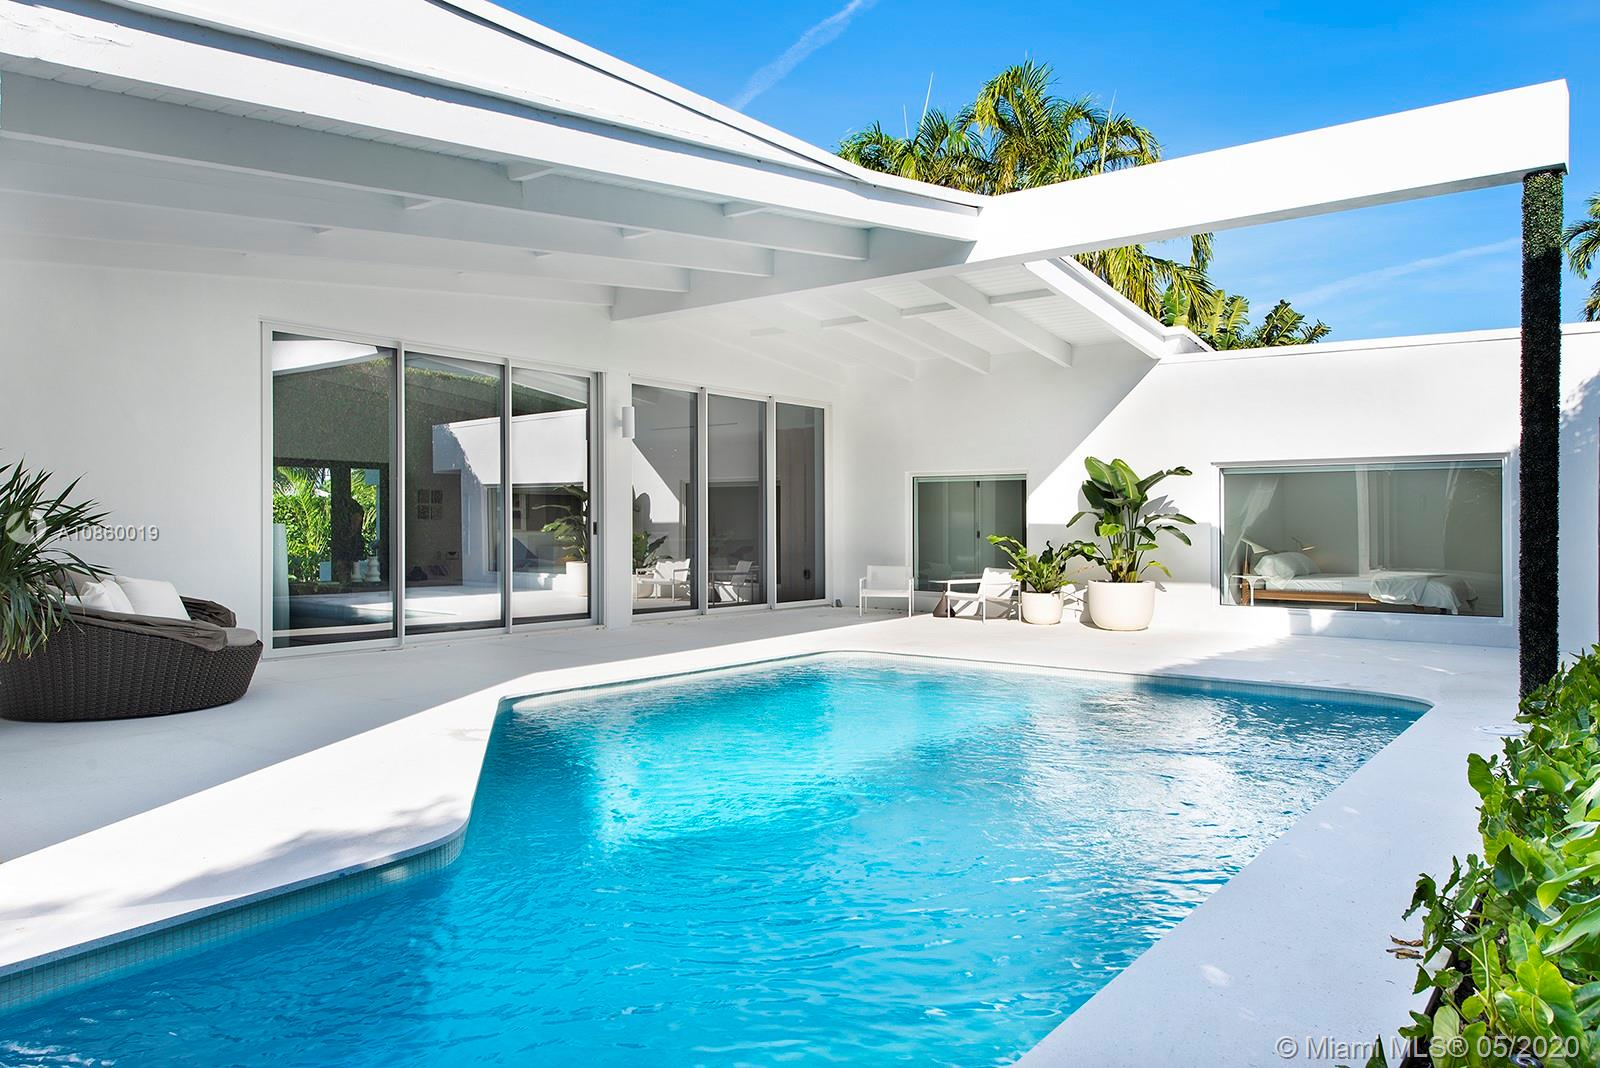 Located on the coveted Venetian Islands, this 5 bedroom 5.5 bath Mid-Century Modern home sits on an exquisite corner lot. The entry leads to an enchanting open floor plan that seamlessly connects formal & informal living spaces with 15 ft tall ceilings that is flooded with natural light and transitions to a stunning pool garden. The sleek designer chef's kitchen includes Miele & Wolf appliances and a butler's pantry; dining room has a custom temp. controlled 200+ wine cellar. The master suite has its own living area, 2-custom walk-in closets and a luxurious bathroom & spa. Features include terrazzo flooring; hurricane impact doors/windows, 2-car driveway; and more! Perfectly situated mins away from Lincoln Rd, Sunset Harbor and easy access to Brickell, Design District, & Miami Airport.